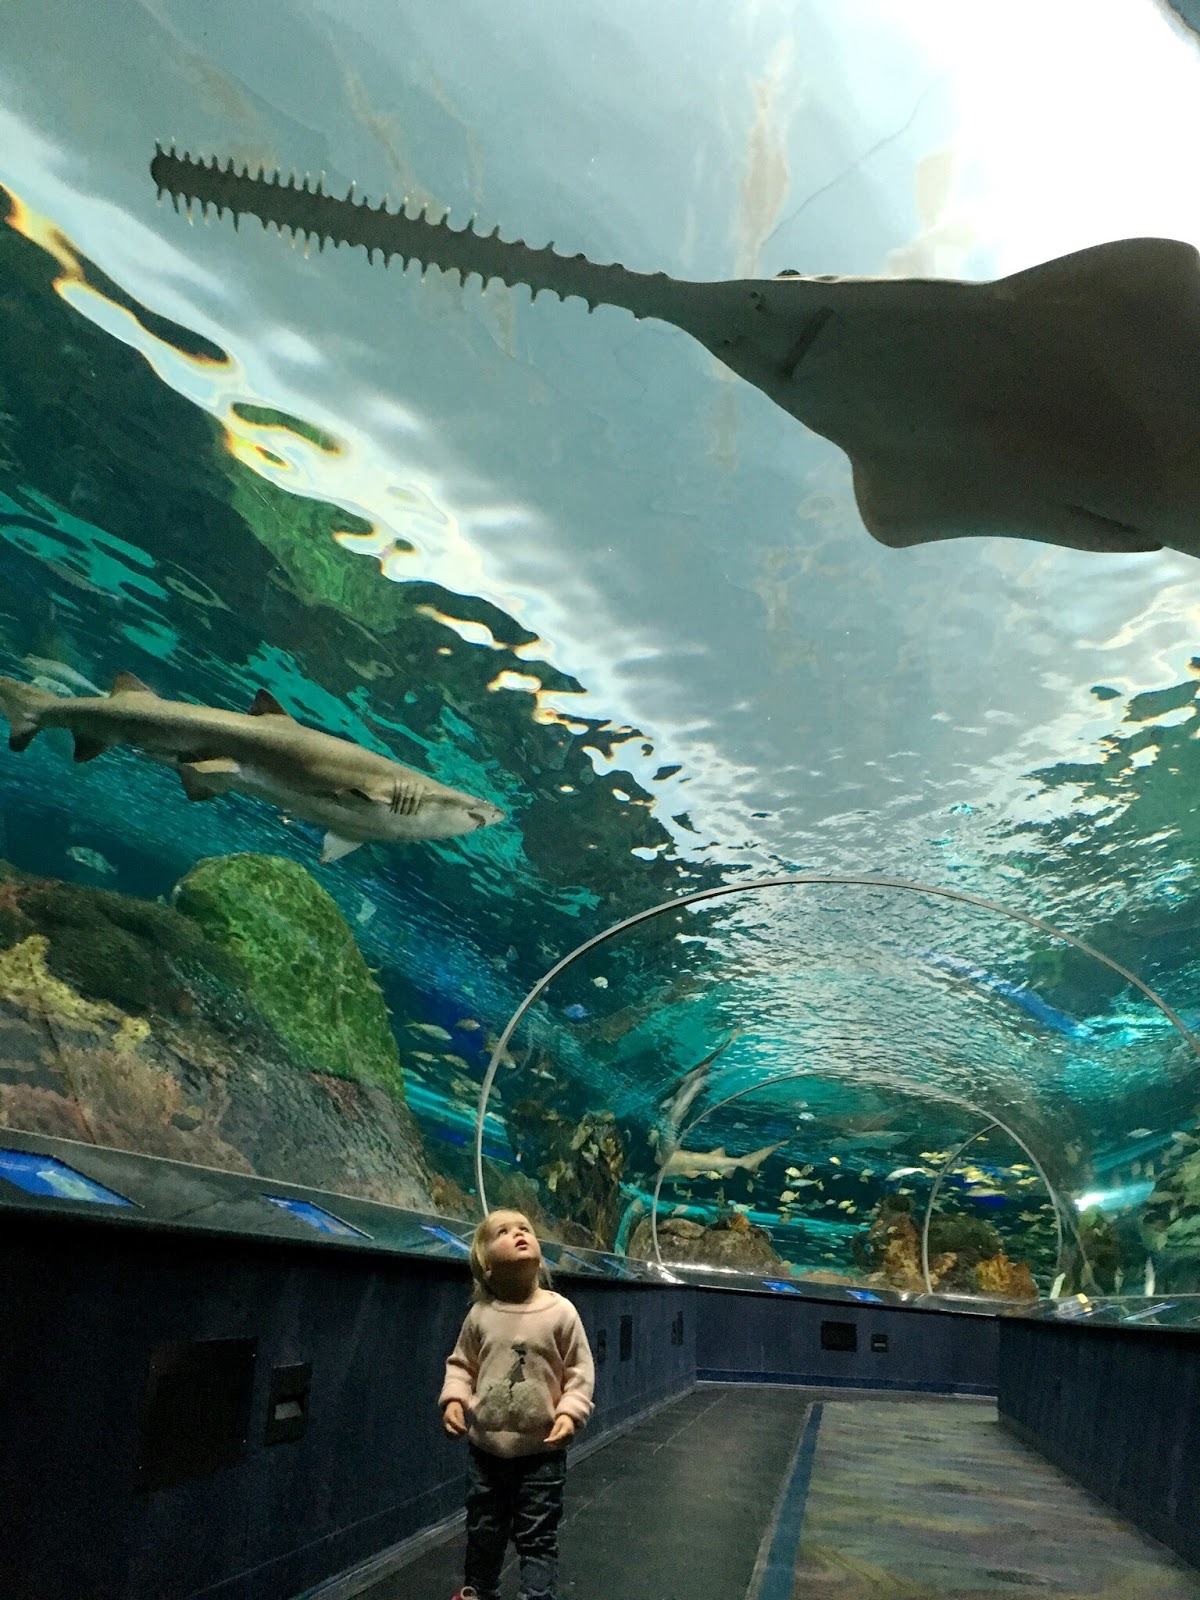 Toddler in Ripley's Aquarium of Canada's Dangerous Lagoon Tunnel